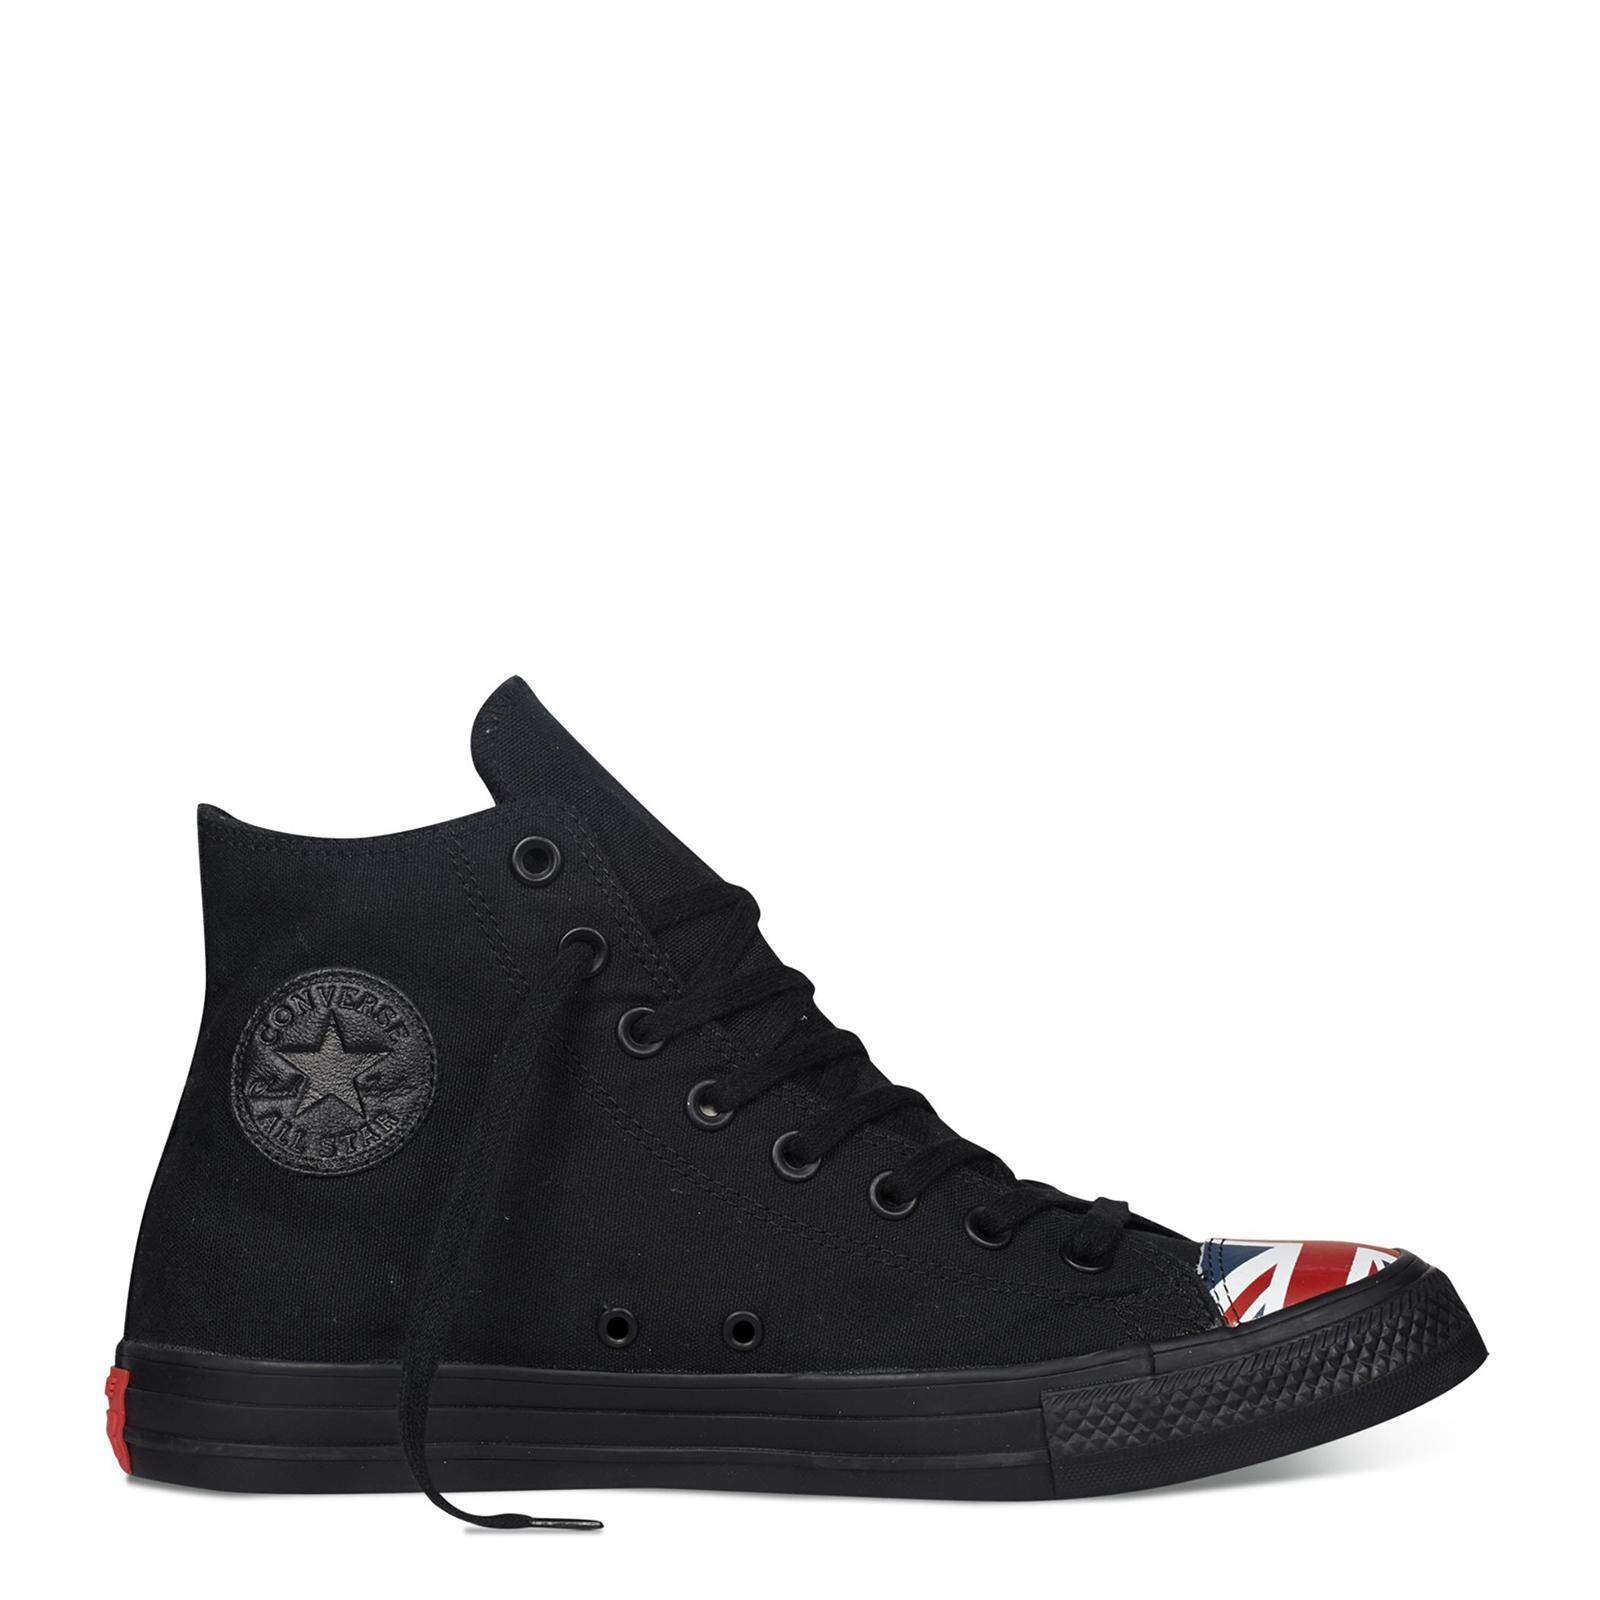 08fa323d350d0 [SALE] CONVERSE CHUCK TAYLOR ALL STAR - BLACK / NAVY / RED 153910C